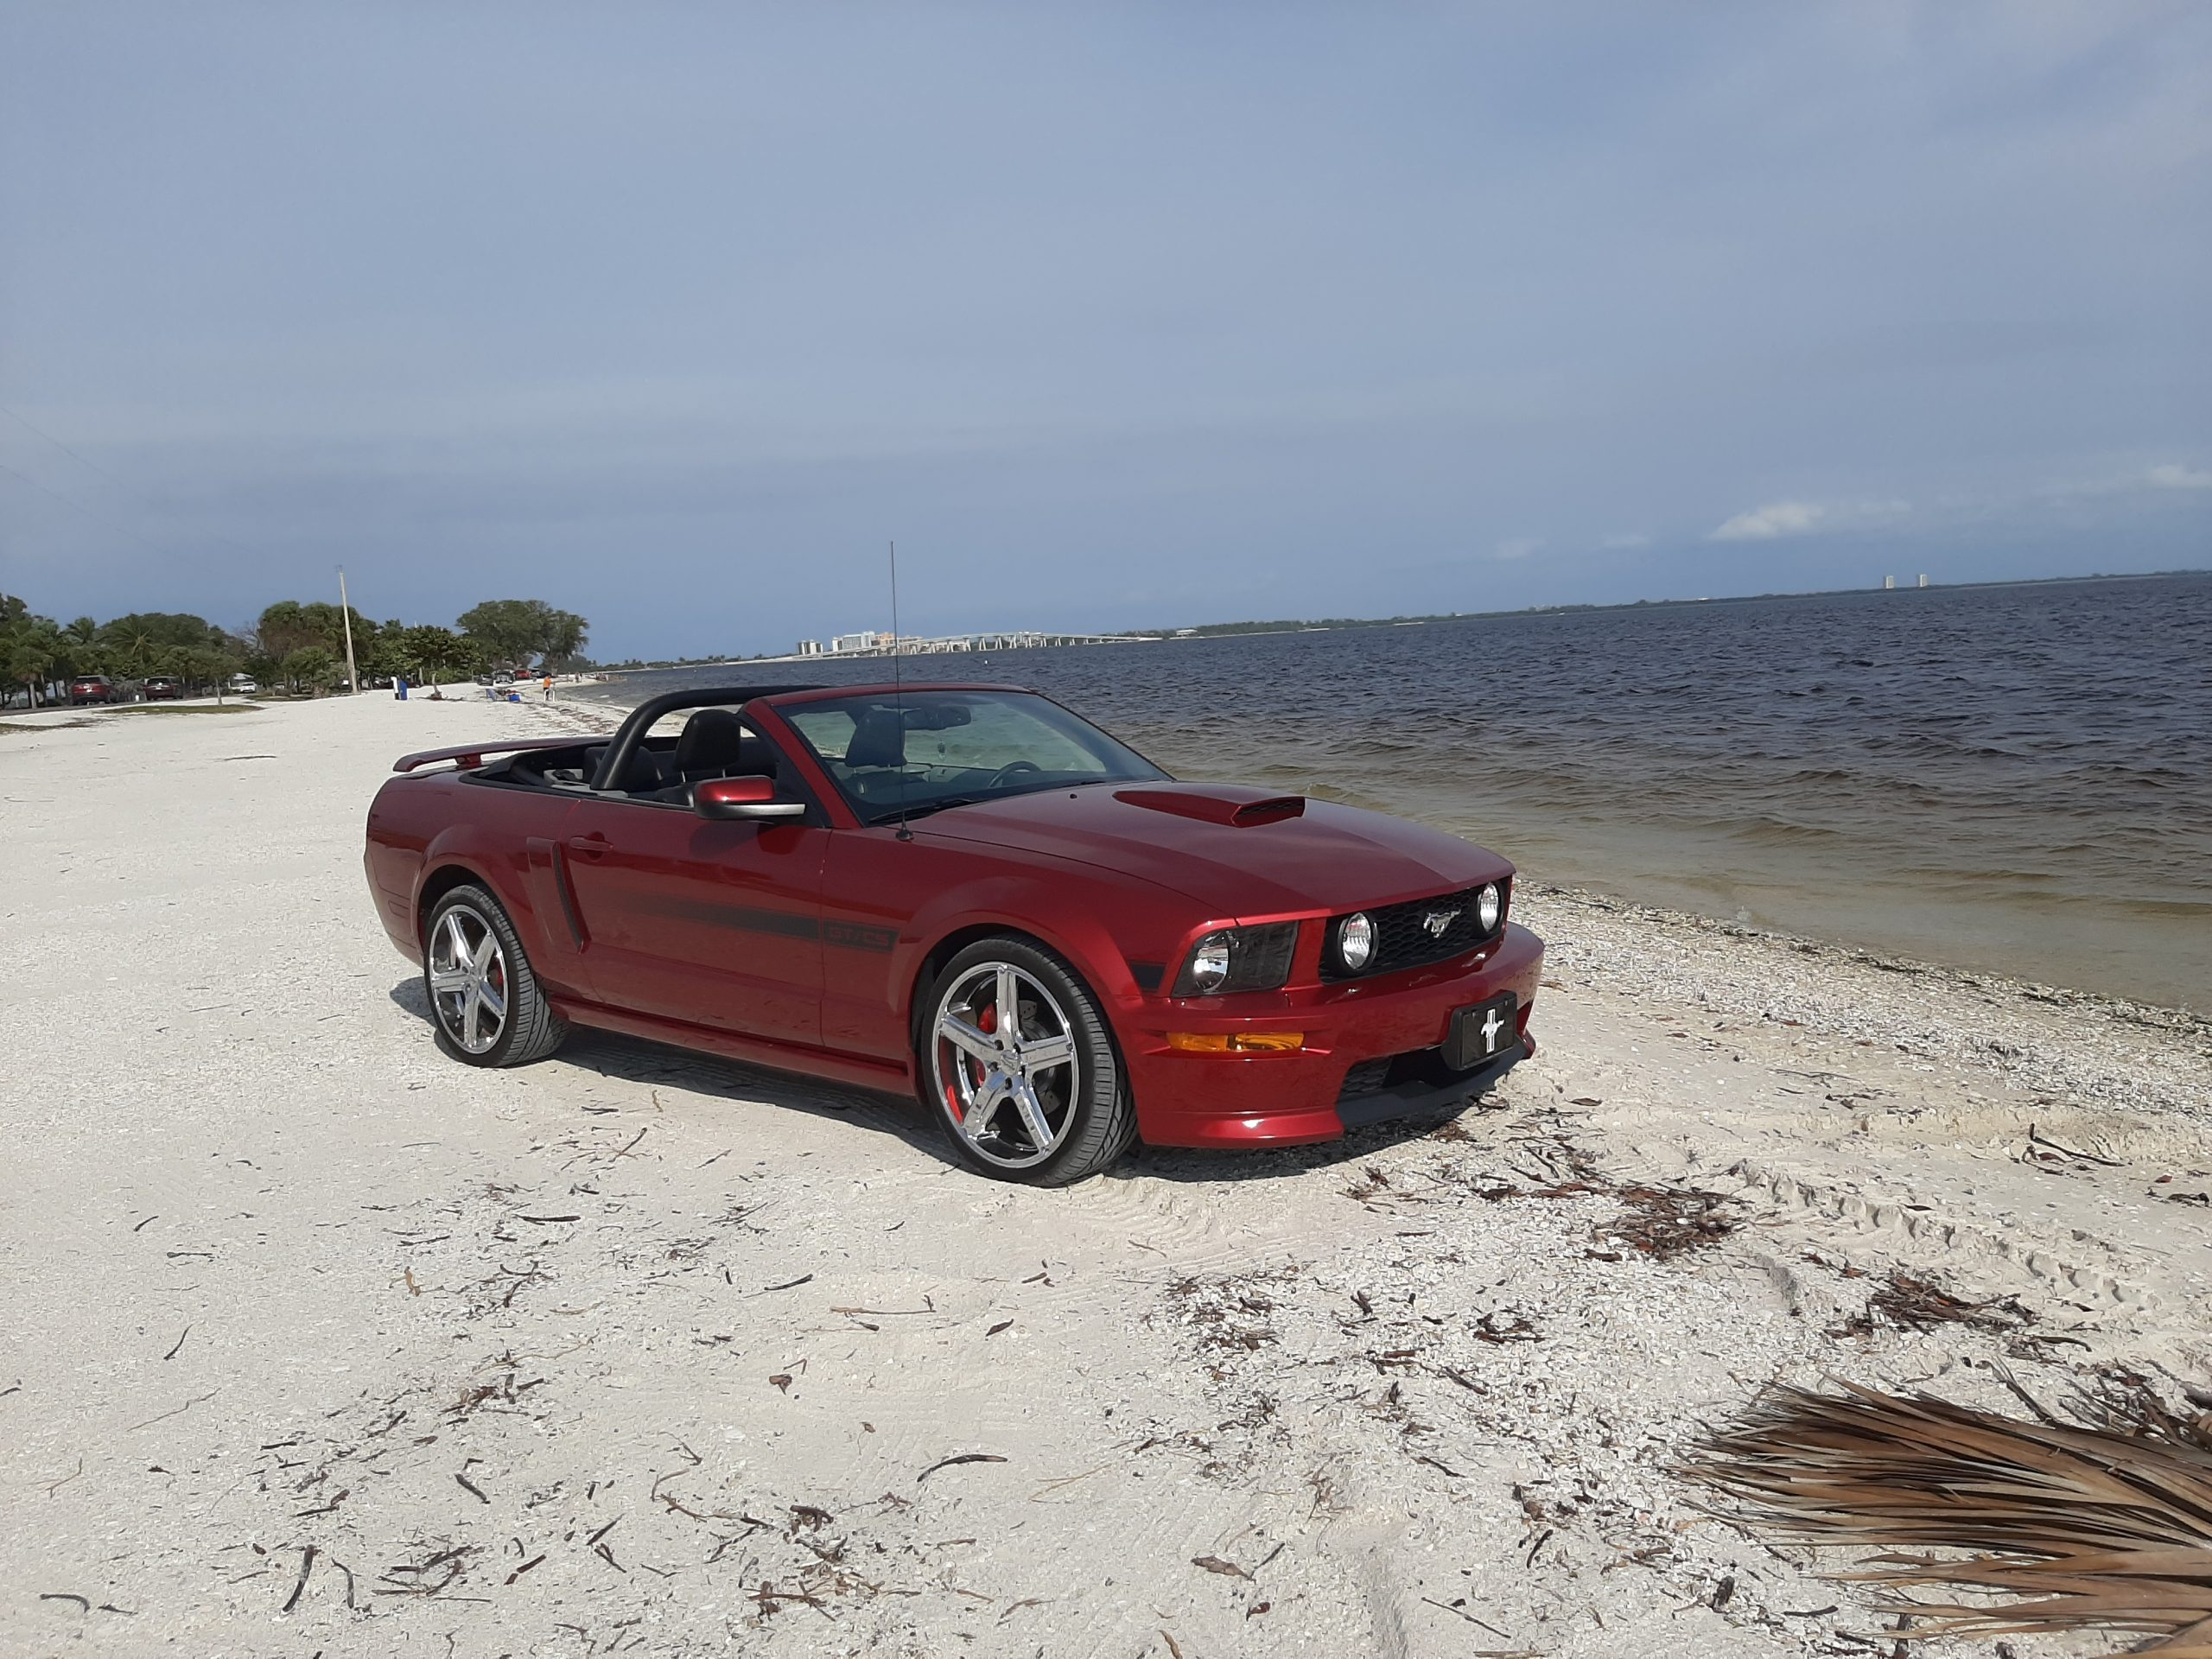 Red 2007 Mustang GT/CS Convertible on the beach